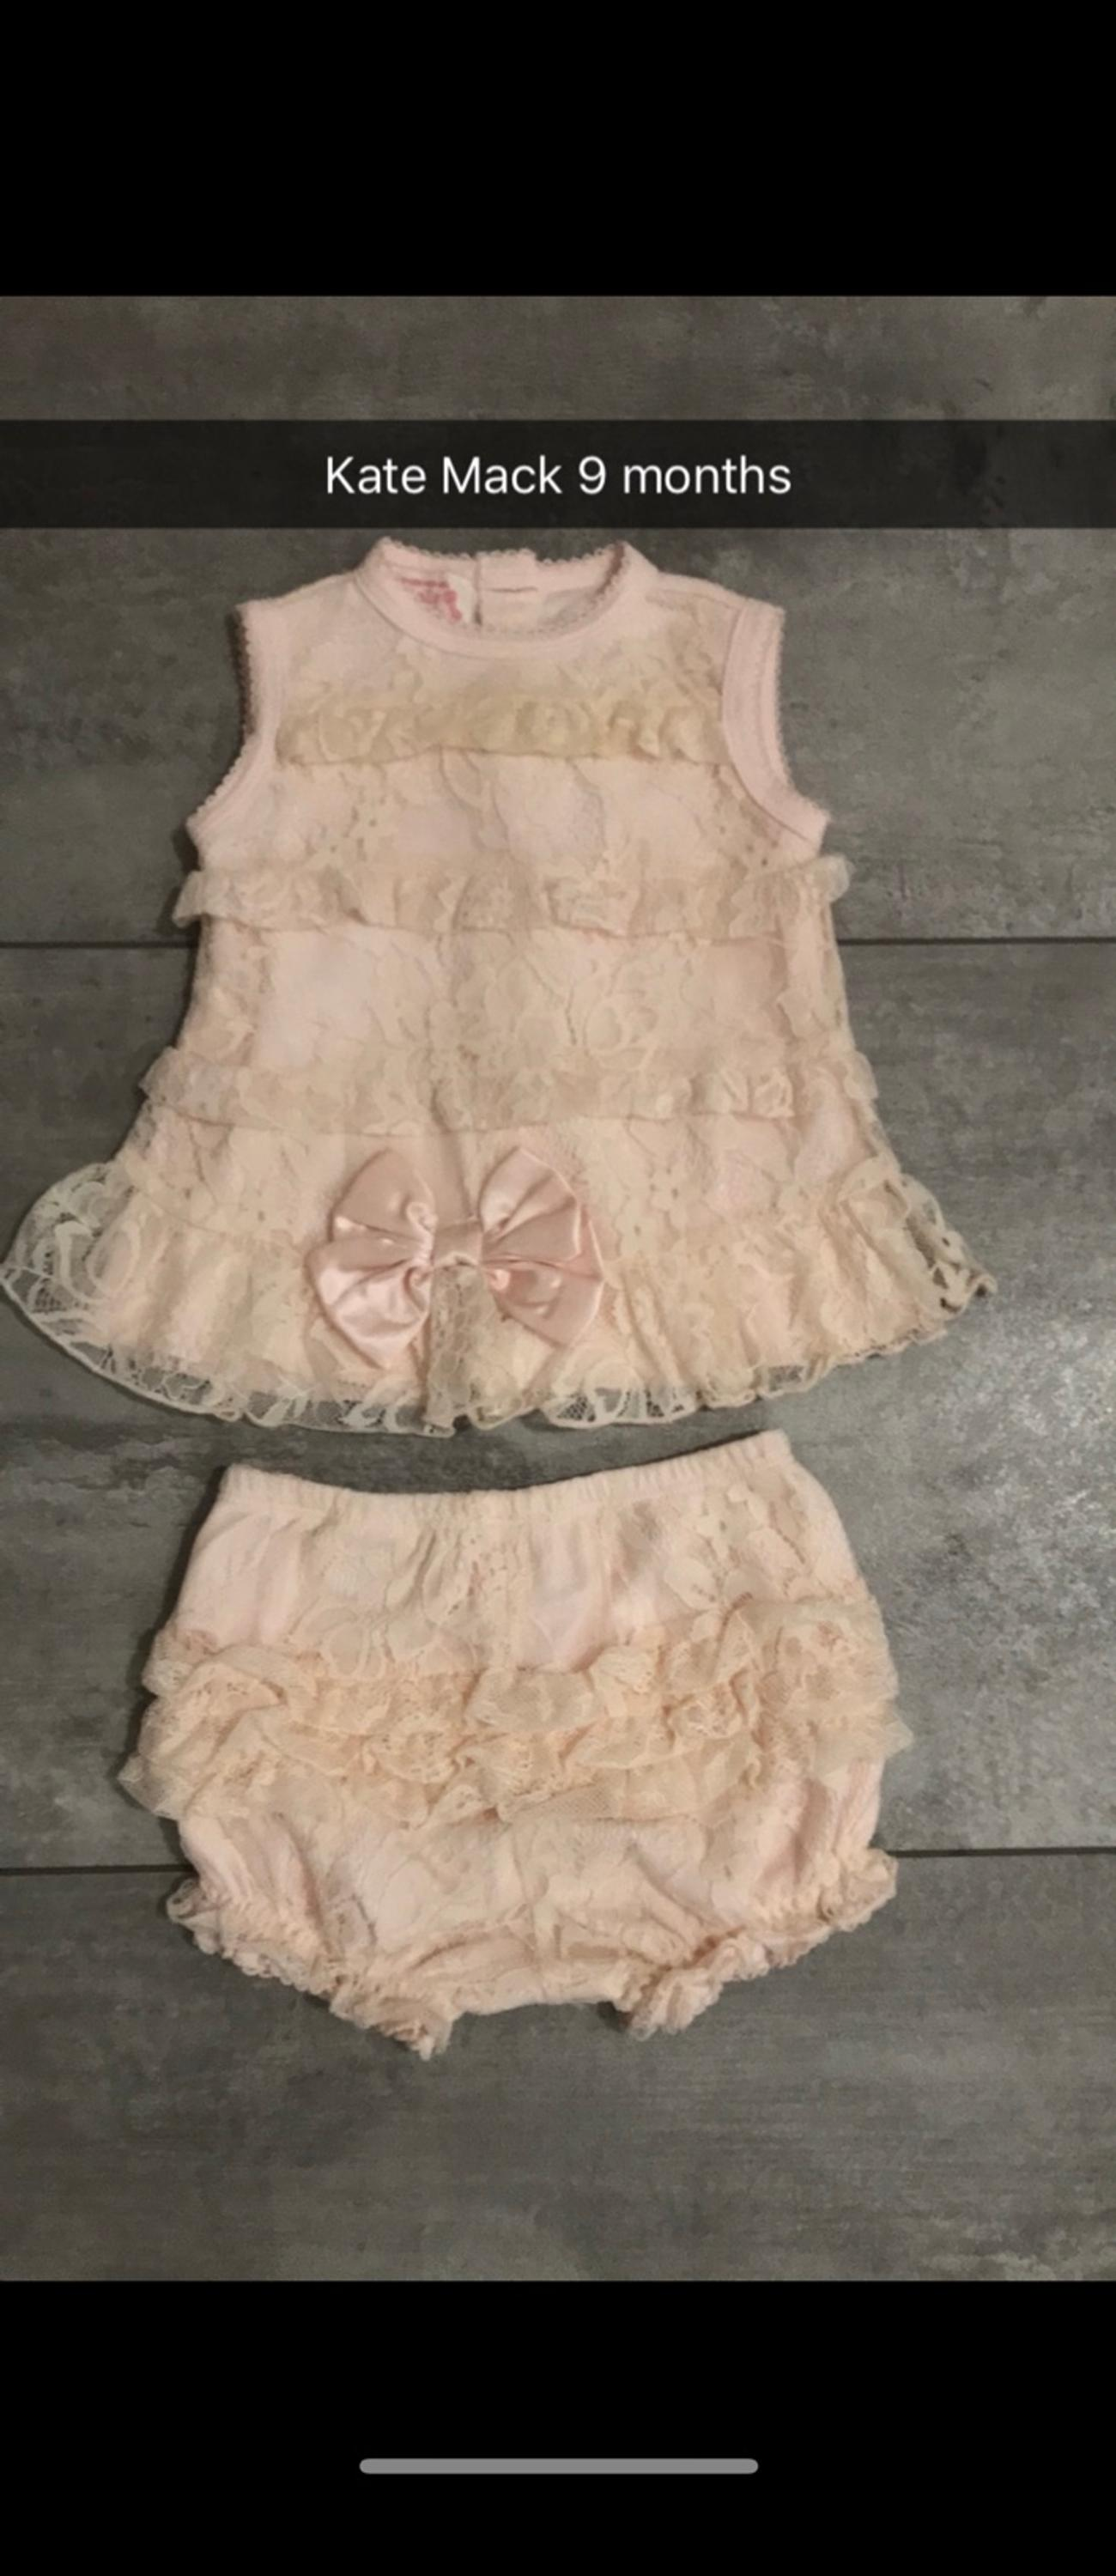 Kate Mack suit age 9 months excellent condition from smoke and pet free home.